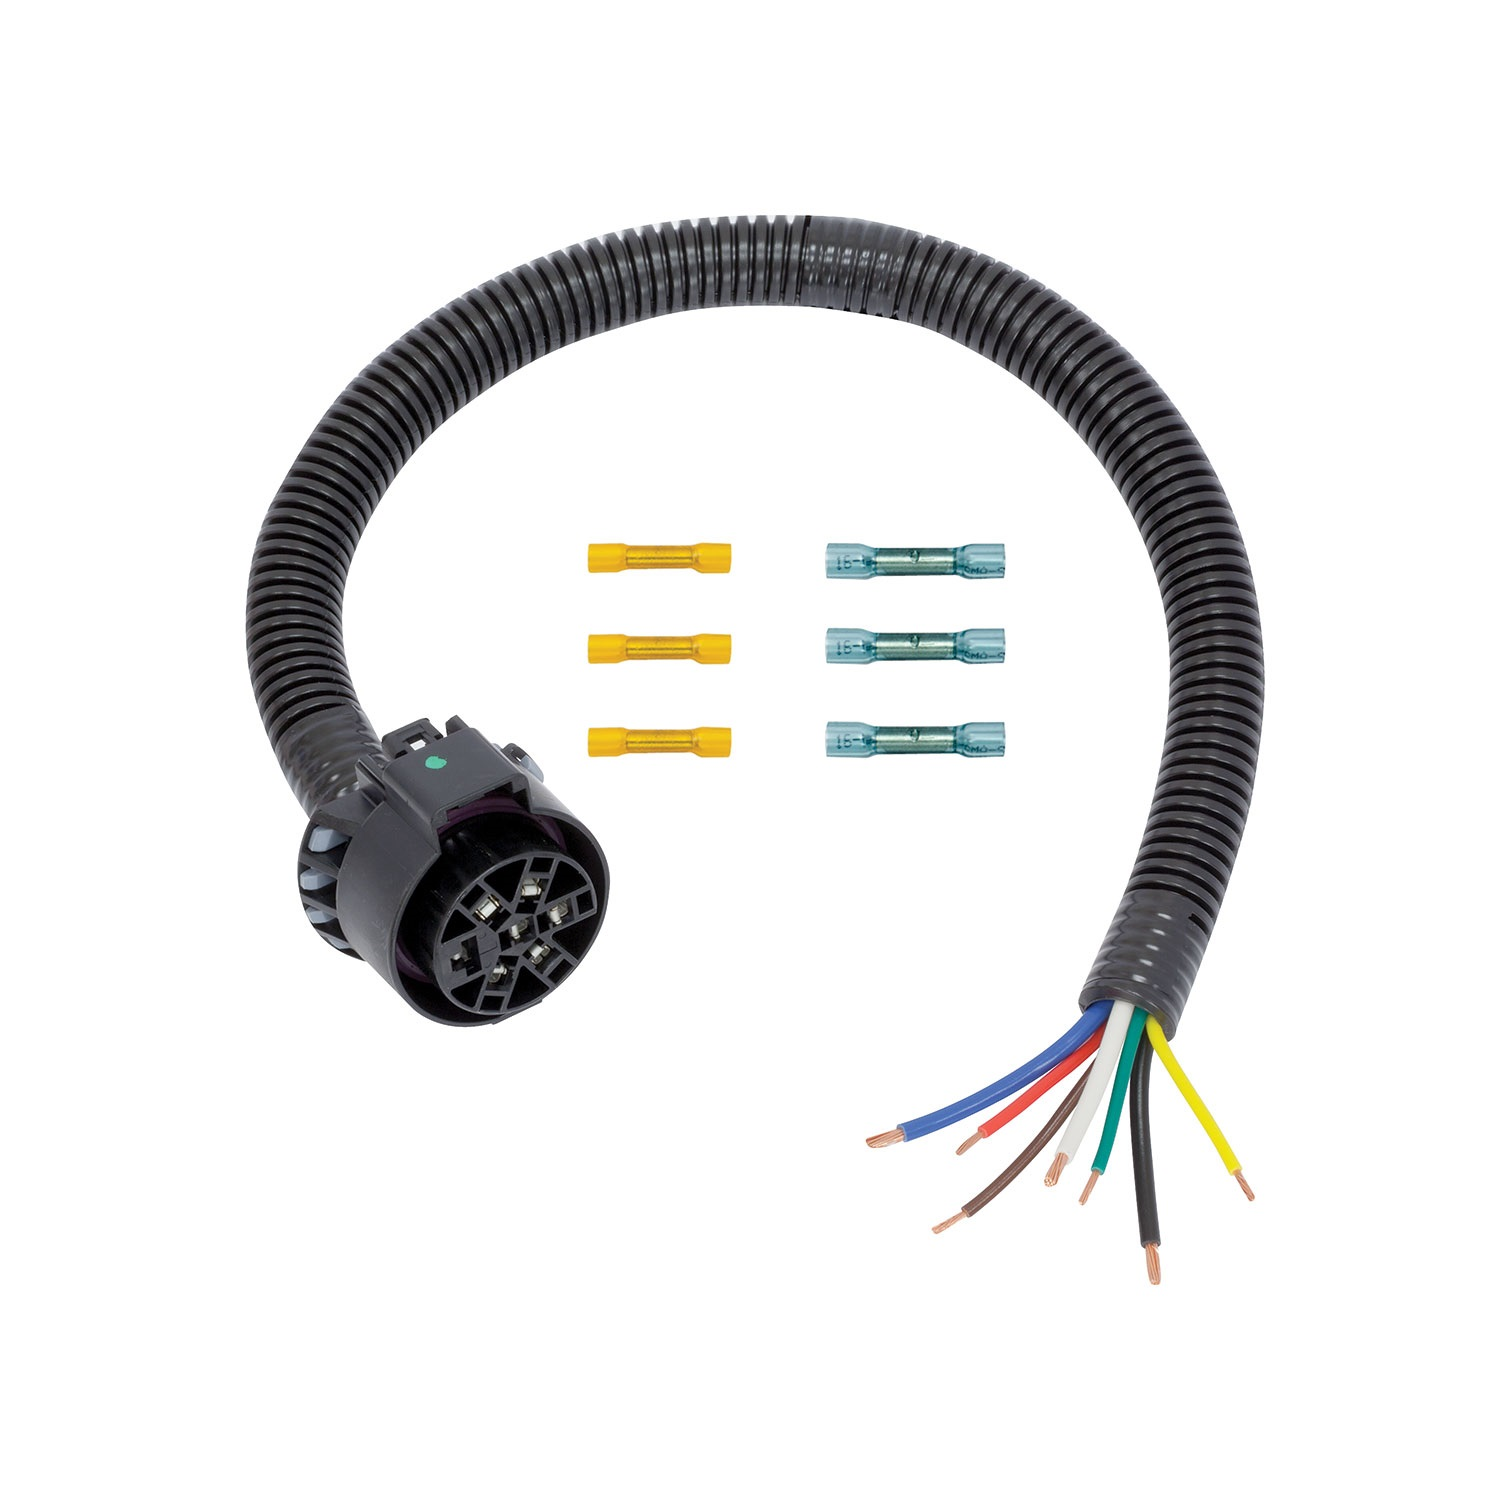 Tow Ready USCAR 7 Way Replacement Harness 20147